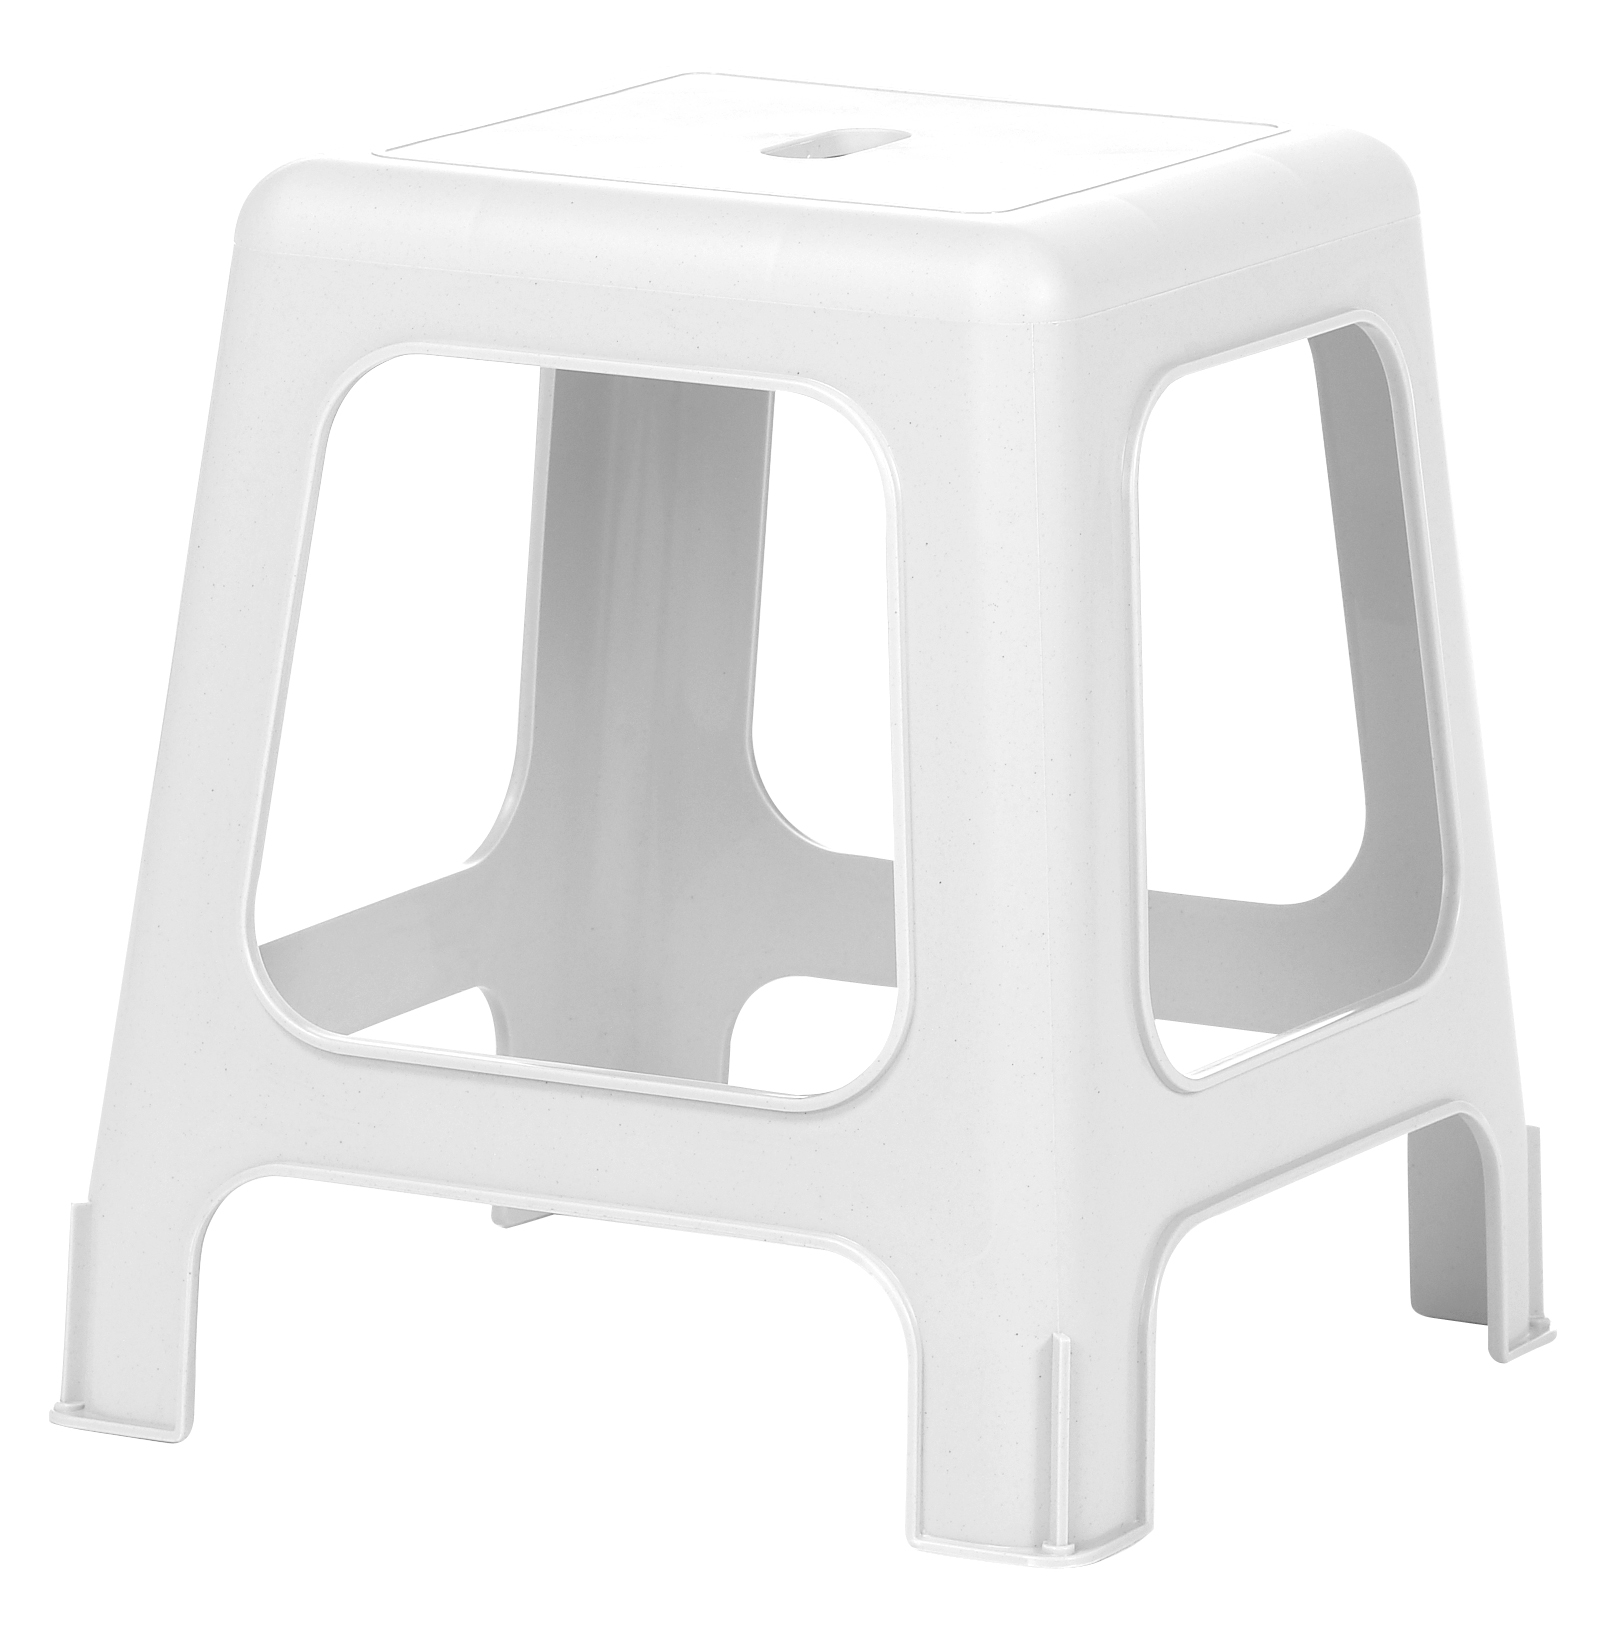 Tabouret de douche en plastique allibert belgique for Salle de bain allibert